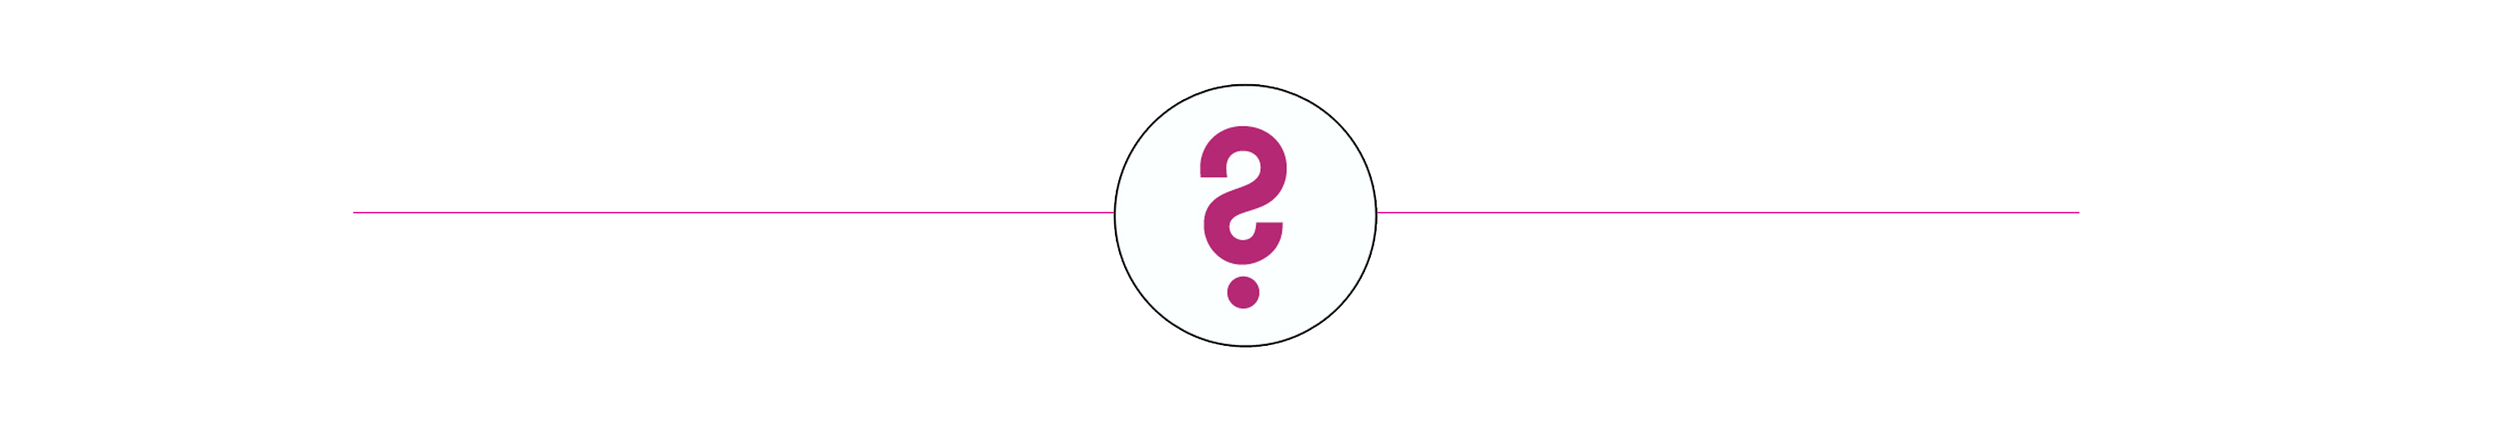 FAQS Question Mark.png